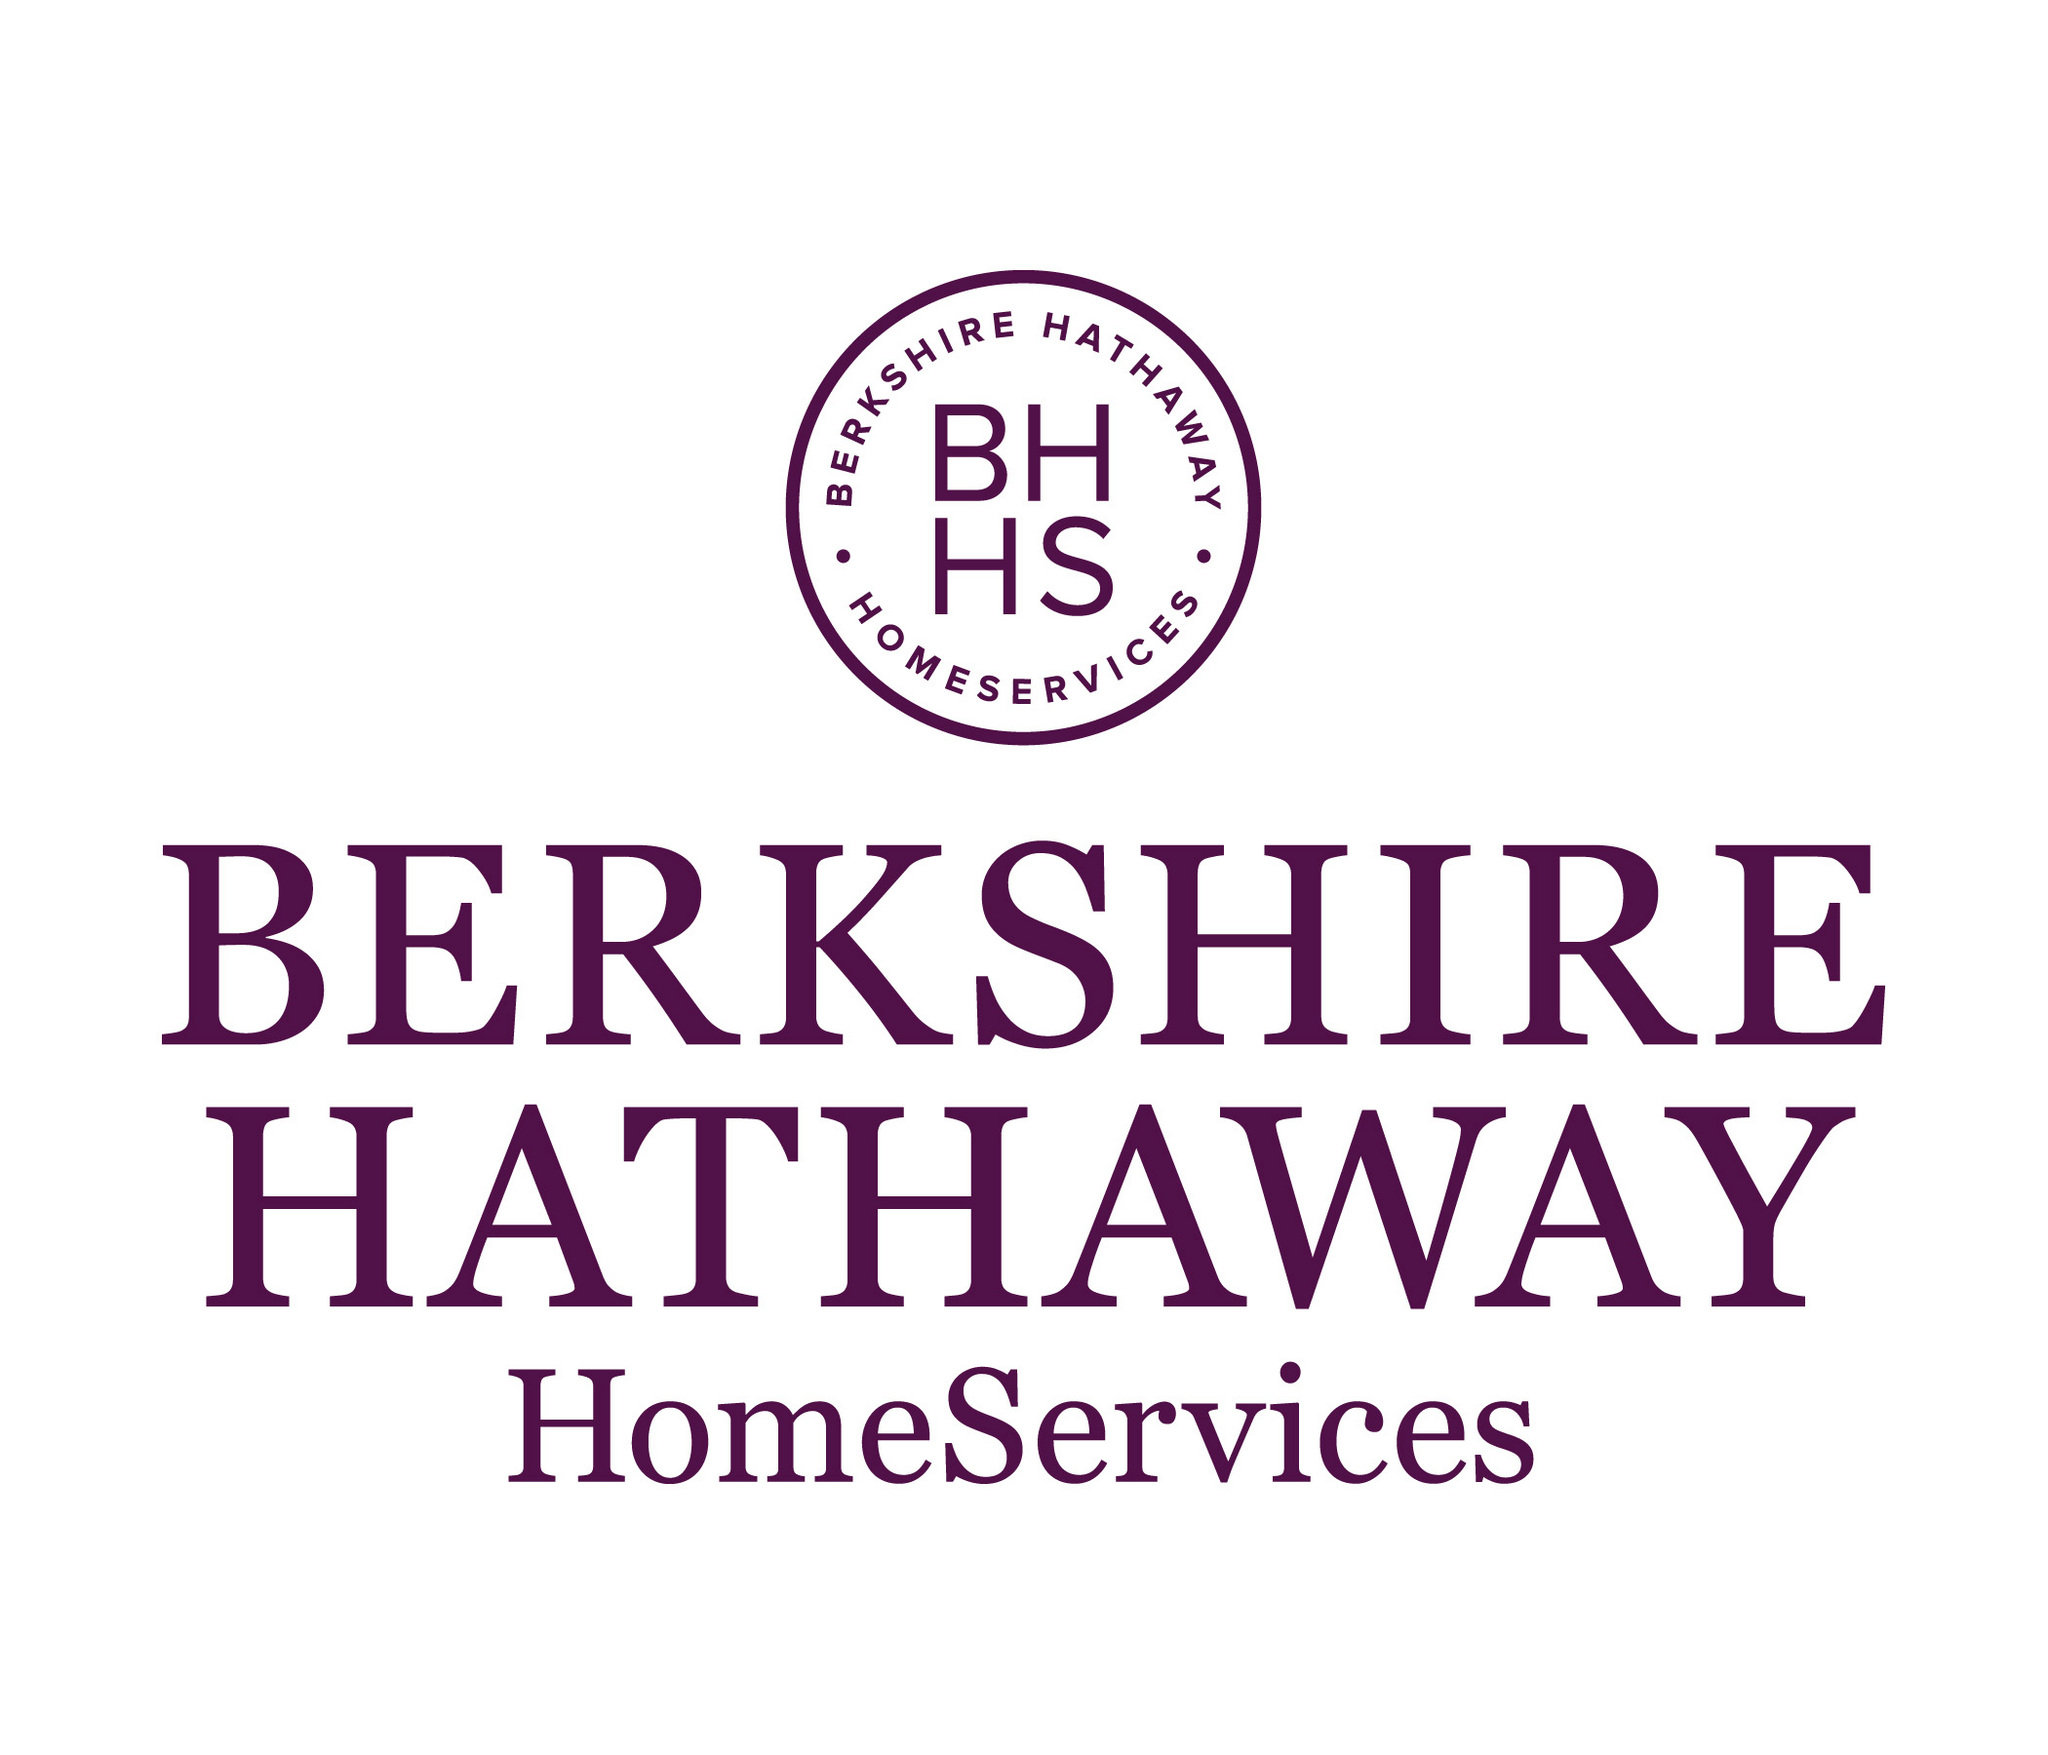 Berkshire Hathaway HomeServices Applauds Eight NAHREP Awarded Agents